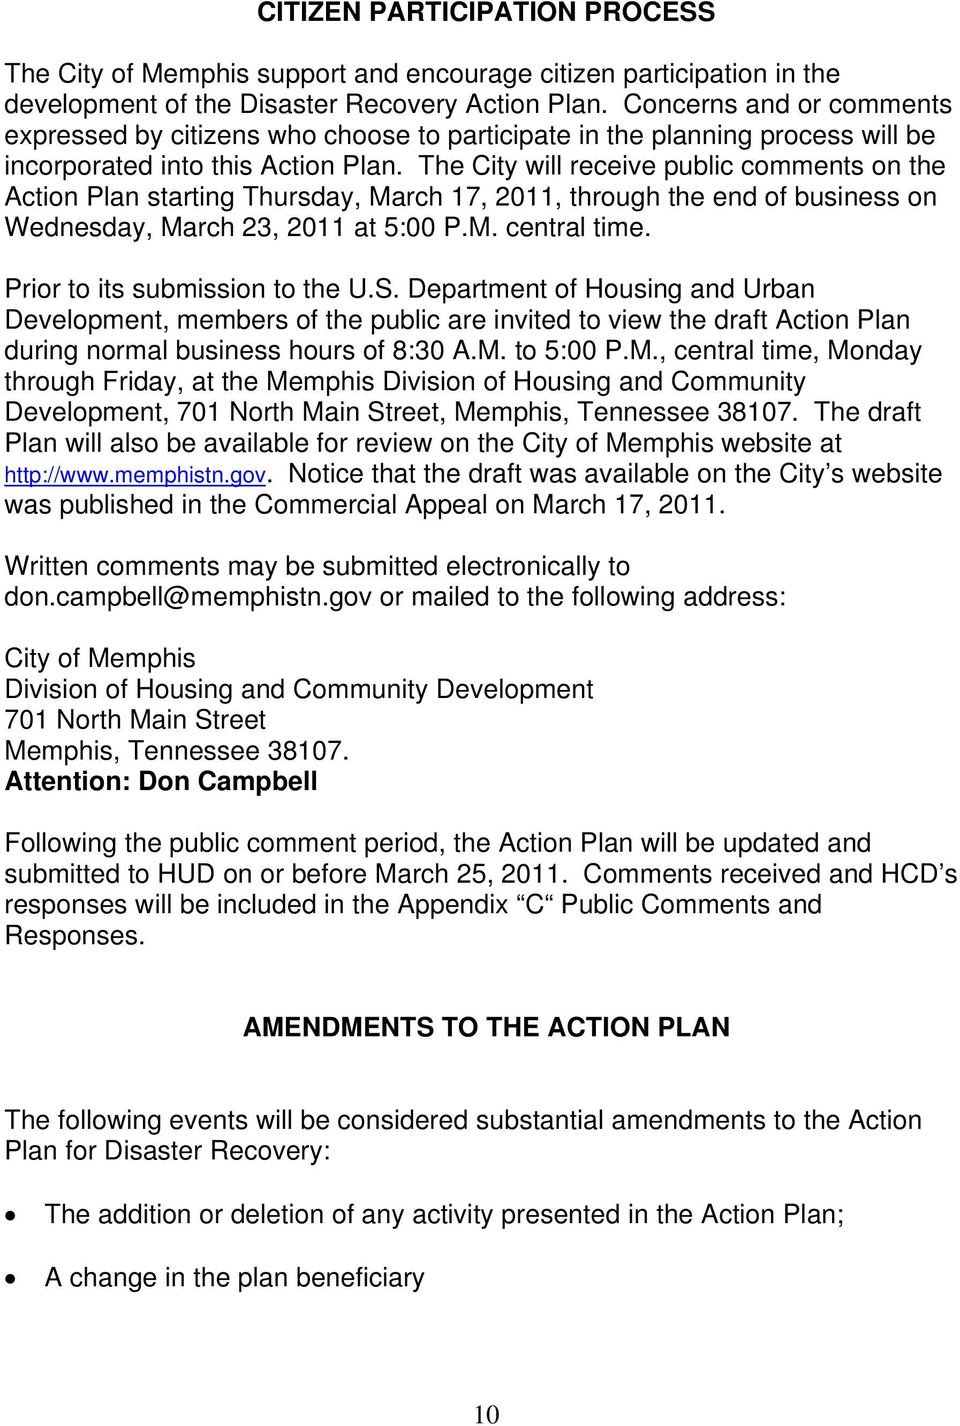 The City will receive public comments on the Action Plan starting Thursday, March 17, 2011, through the end of business on Wednesday, March 23, 2011 at 5:00 P.M. central time.